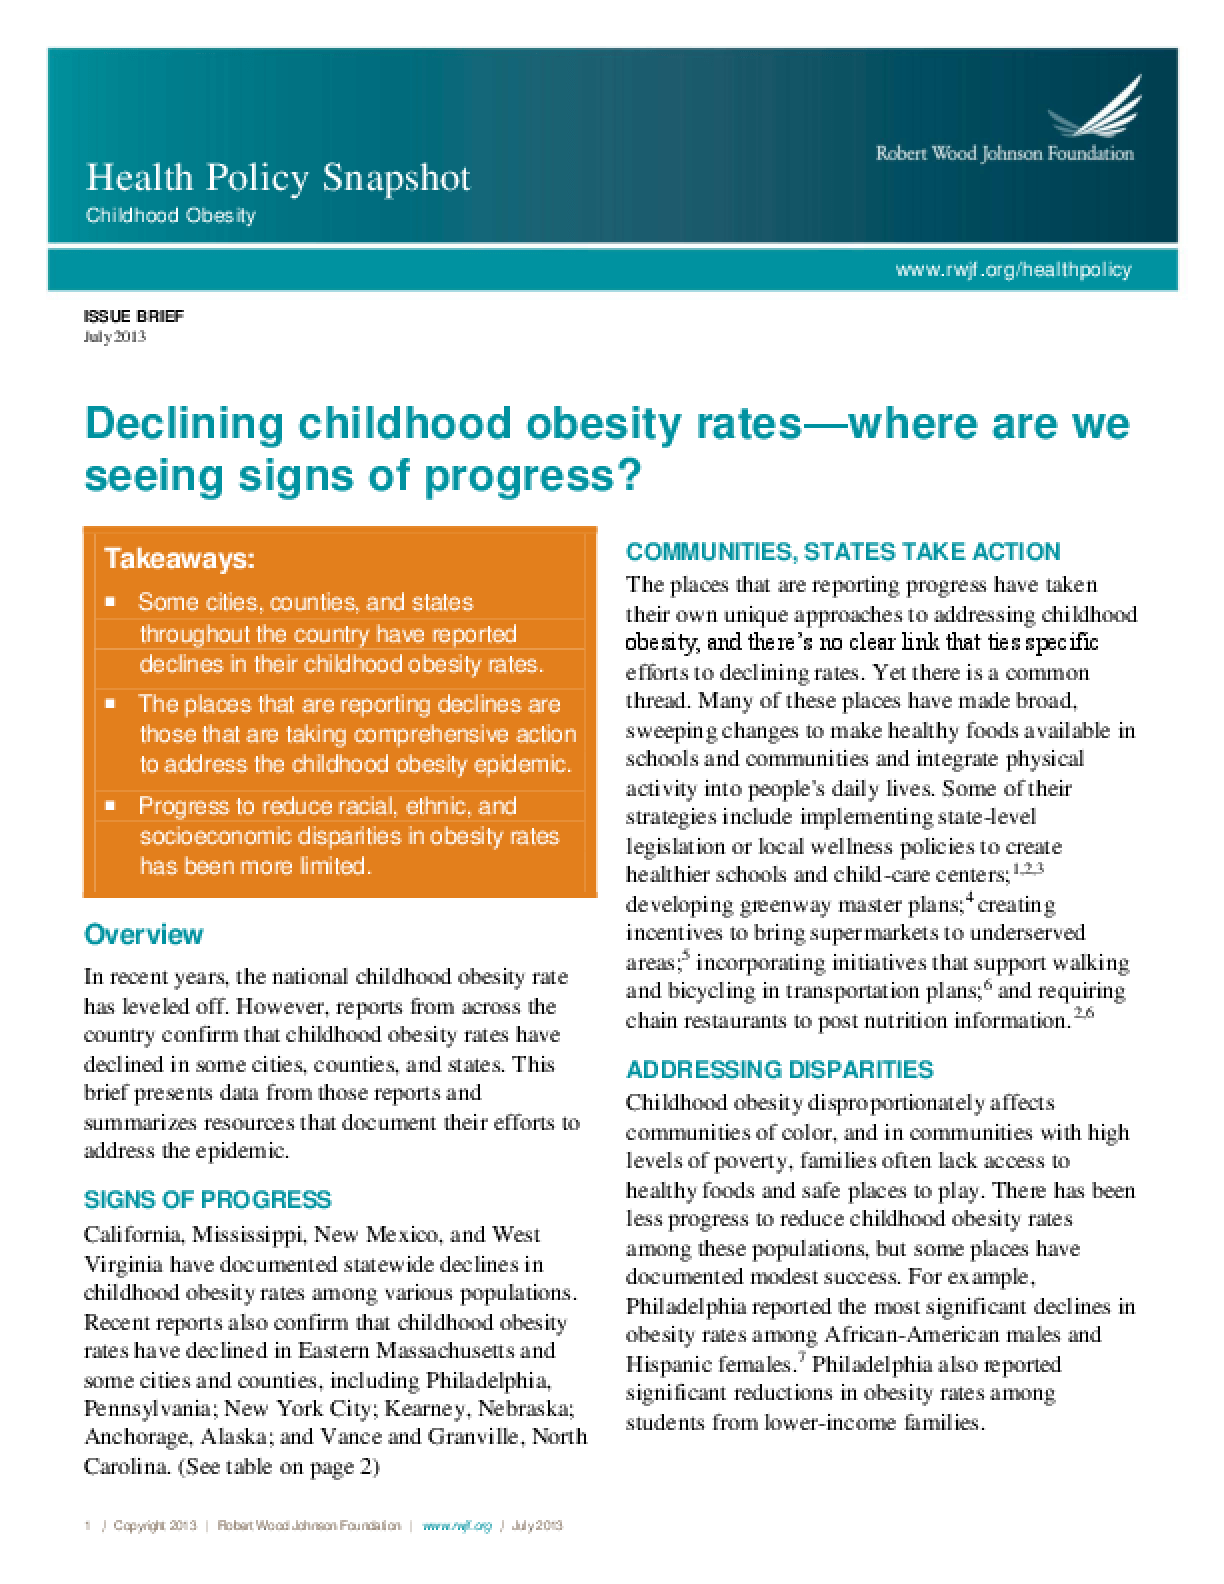 Declining Childhood Obesity Rates - Where Are We Seeing Signs of Progress?